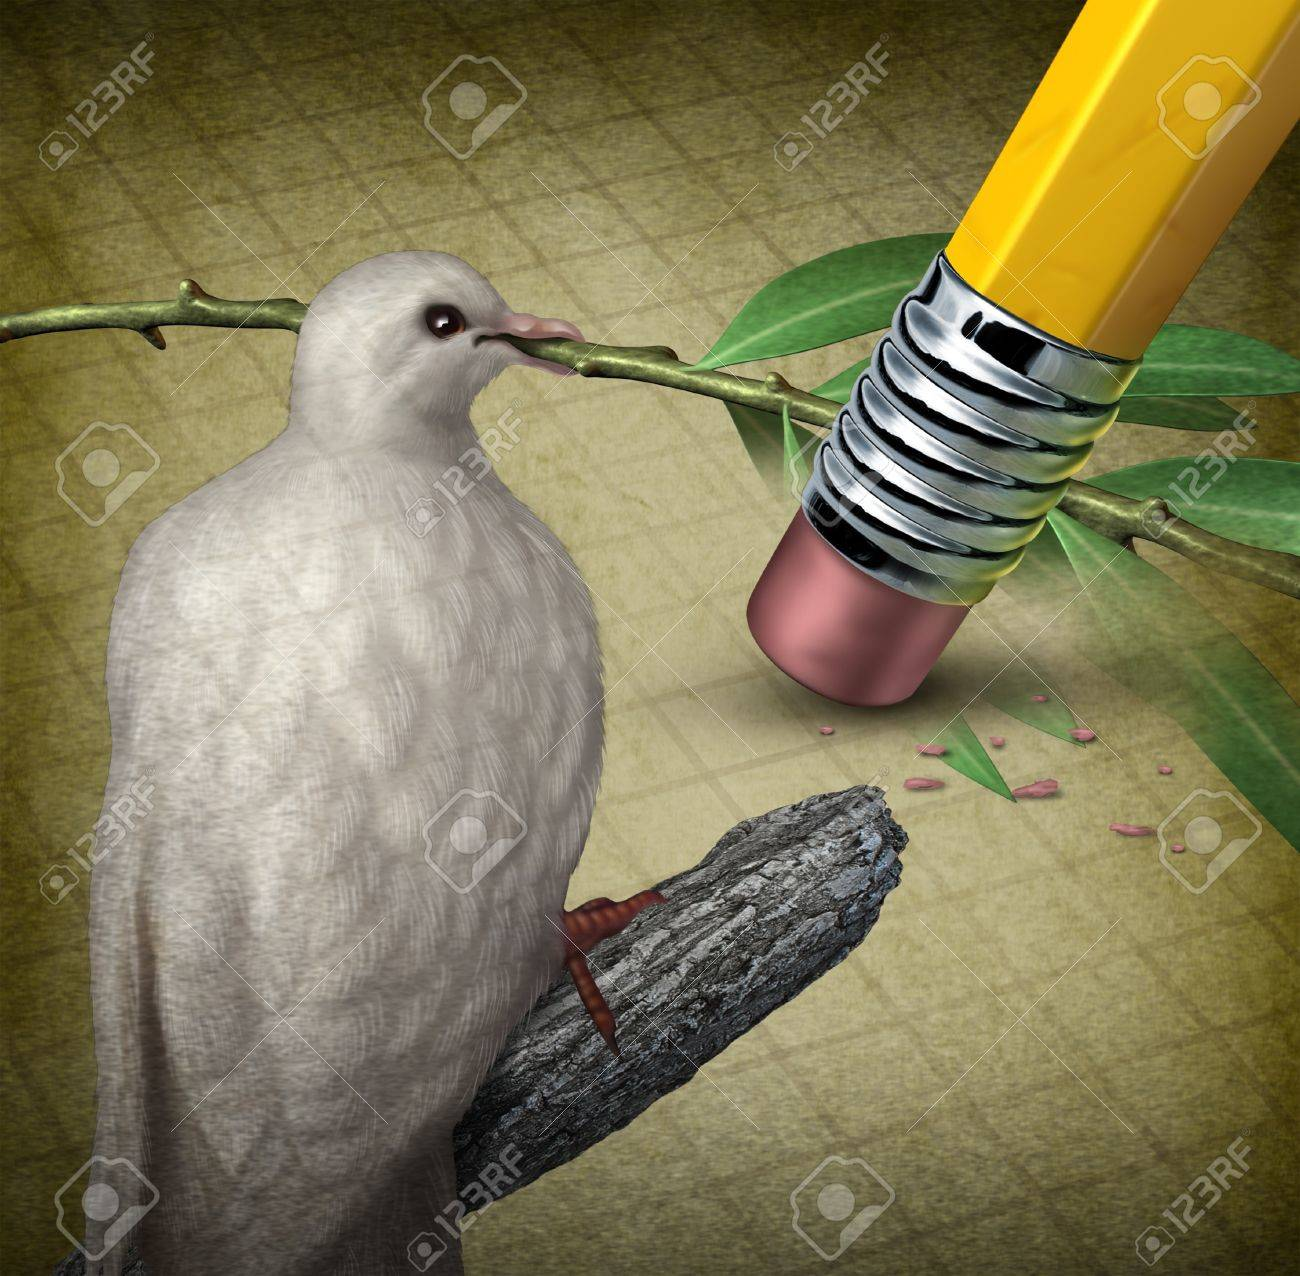 Losing Peace Crisis Concept With A White Dove Holding An Olive